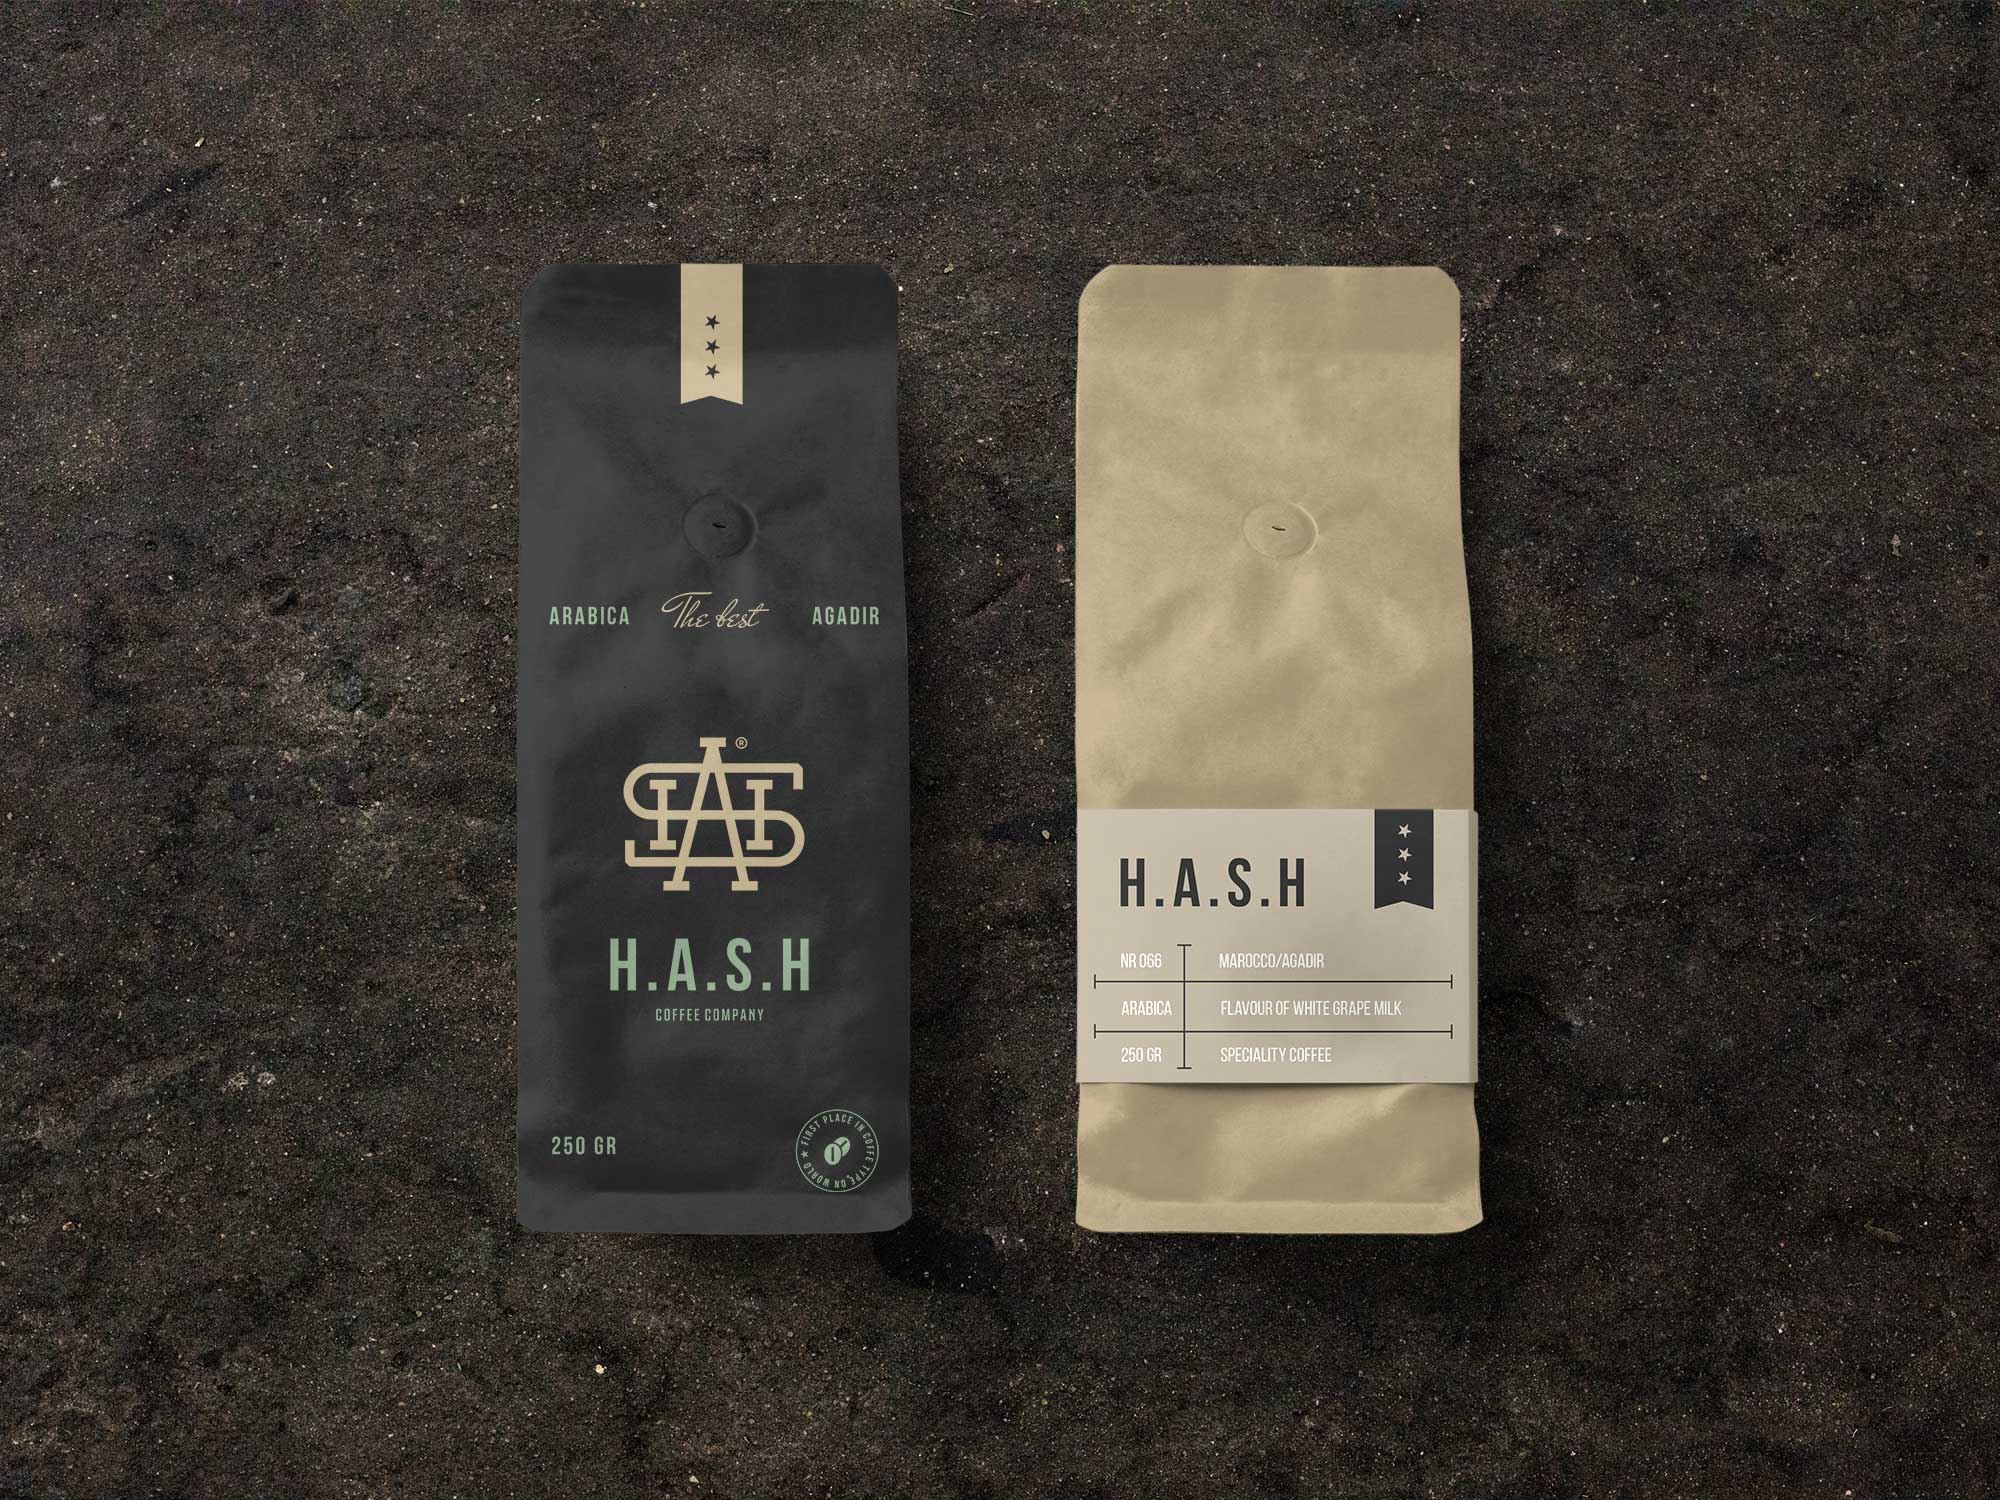 Two coffee bags on a brown background